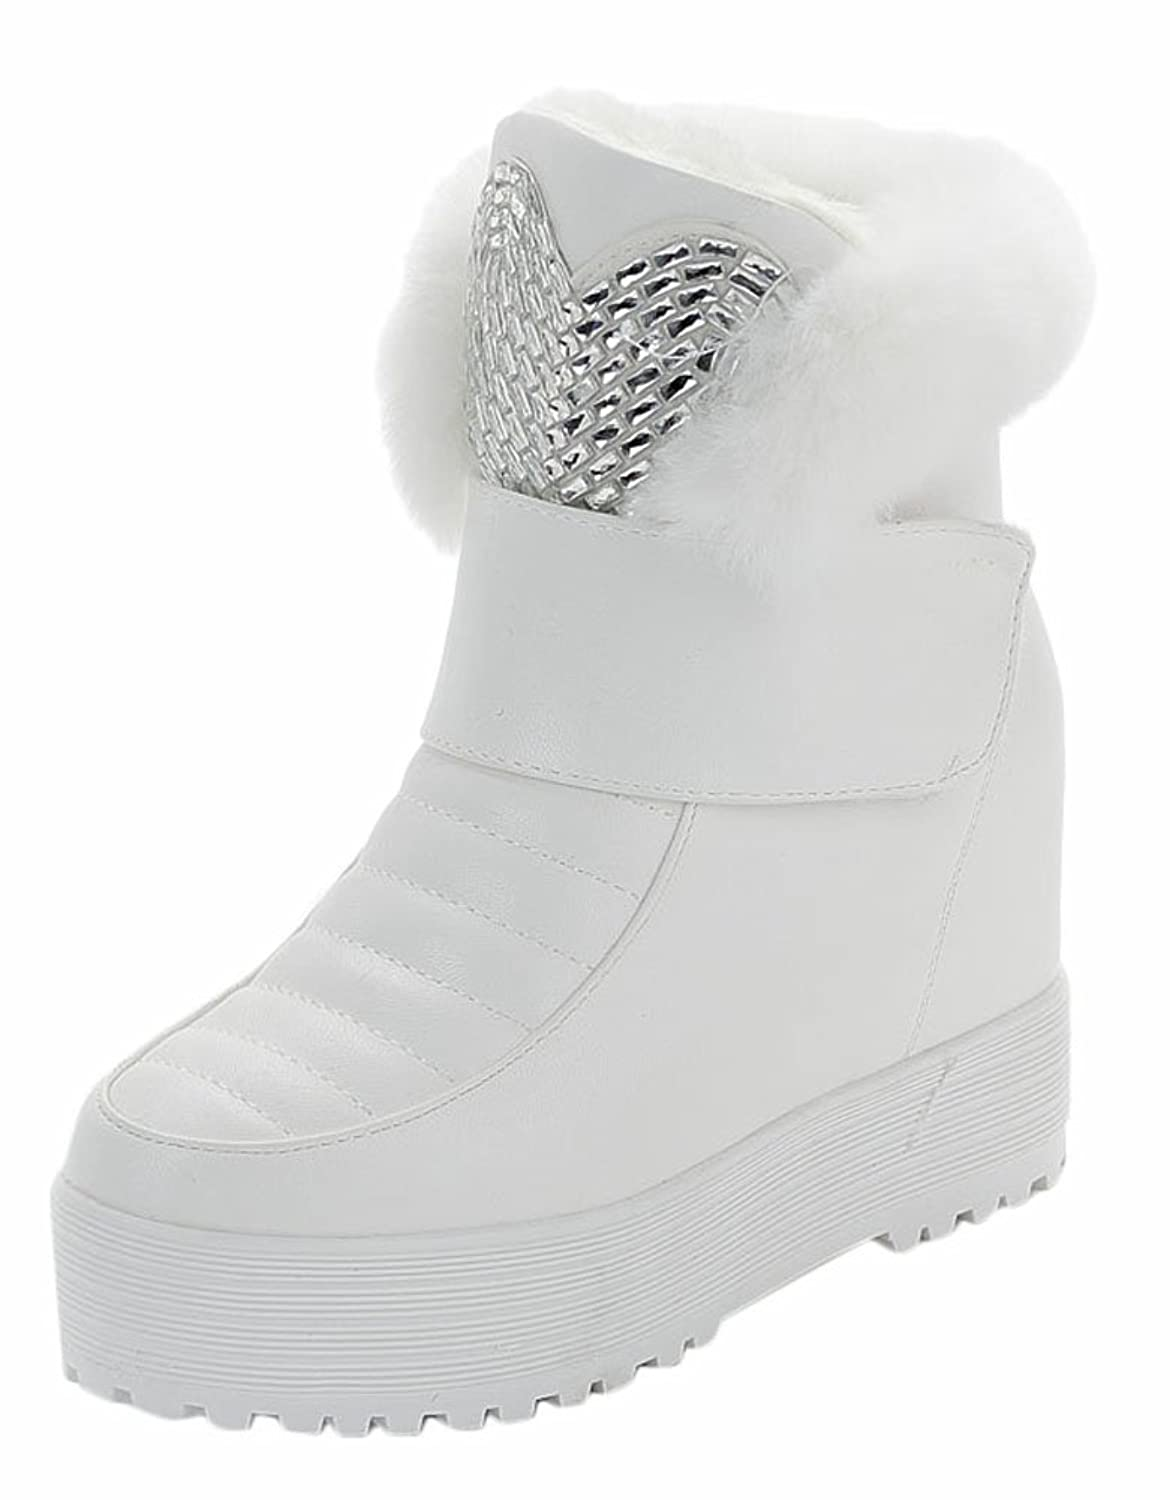 Ace Women's Winter Platform Wedge High-top Thermal Snow Boots with Fur